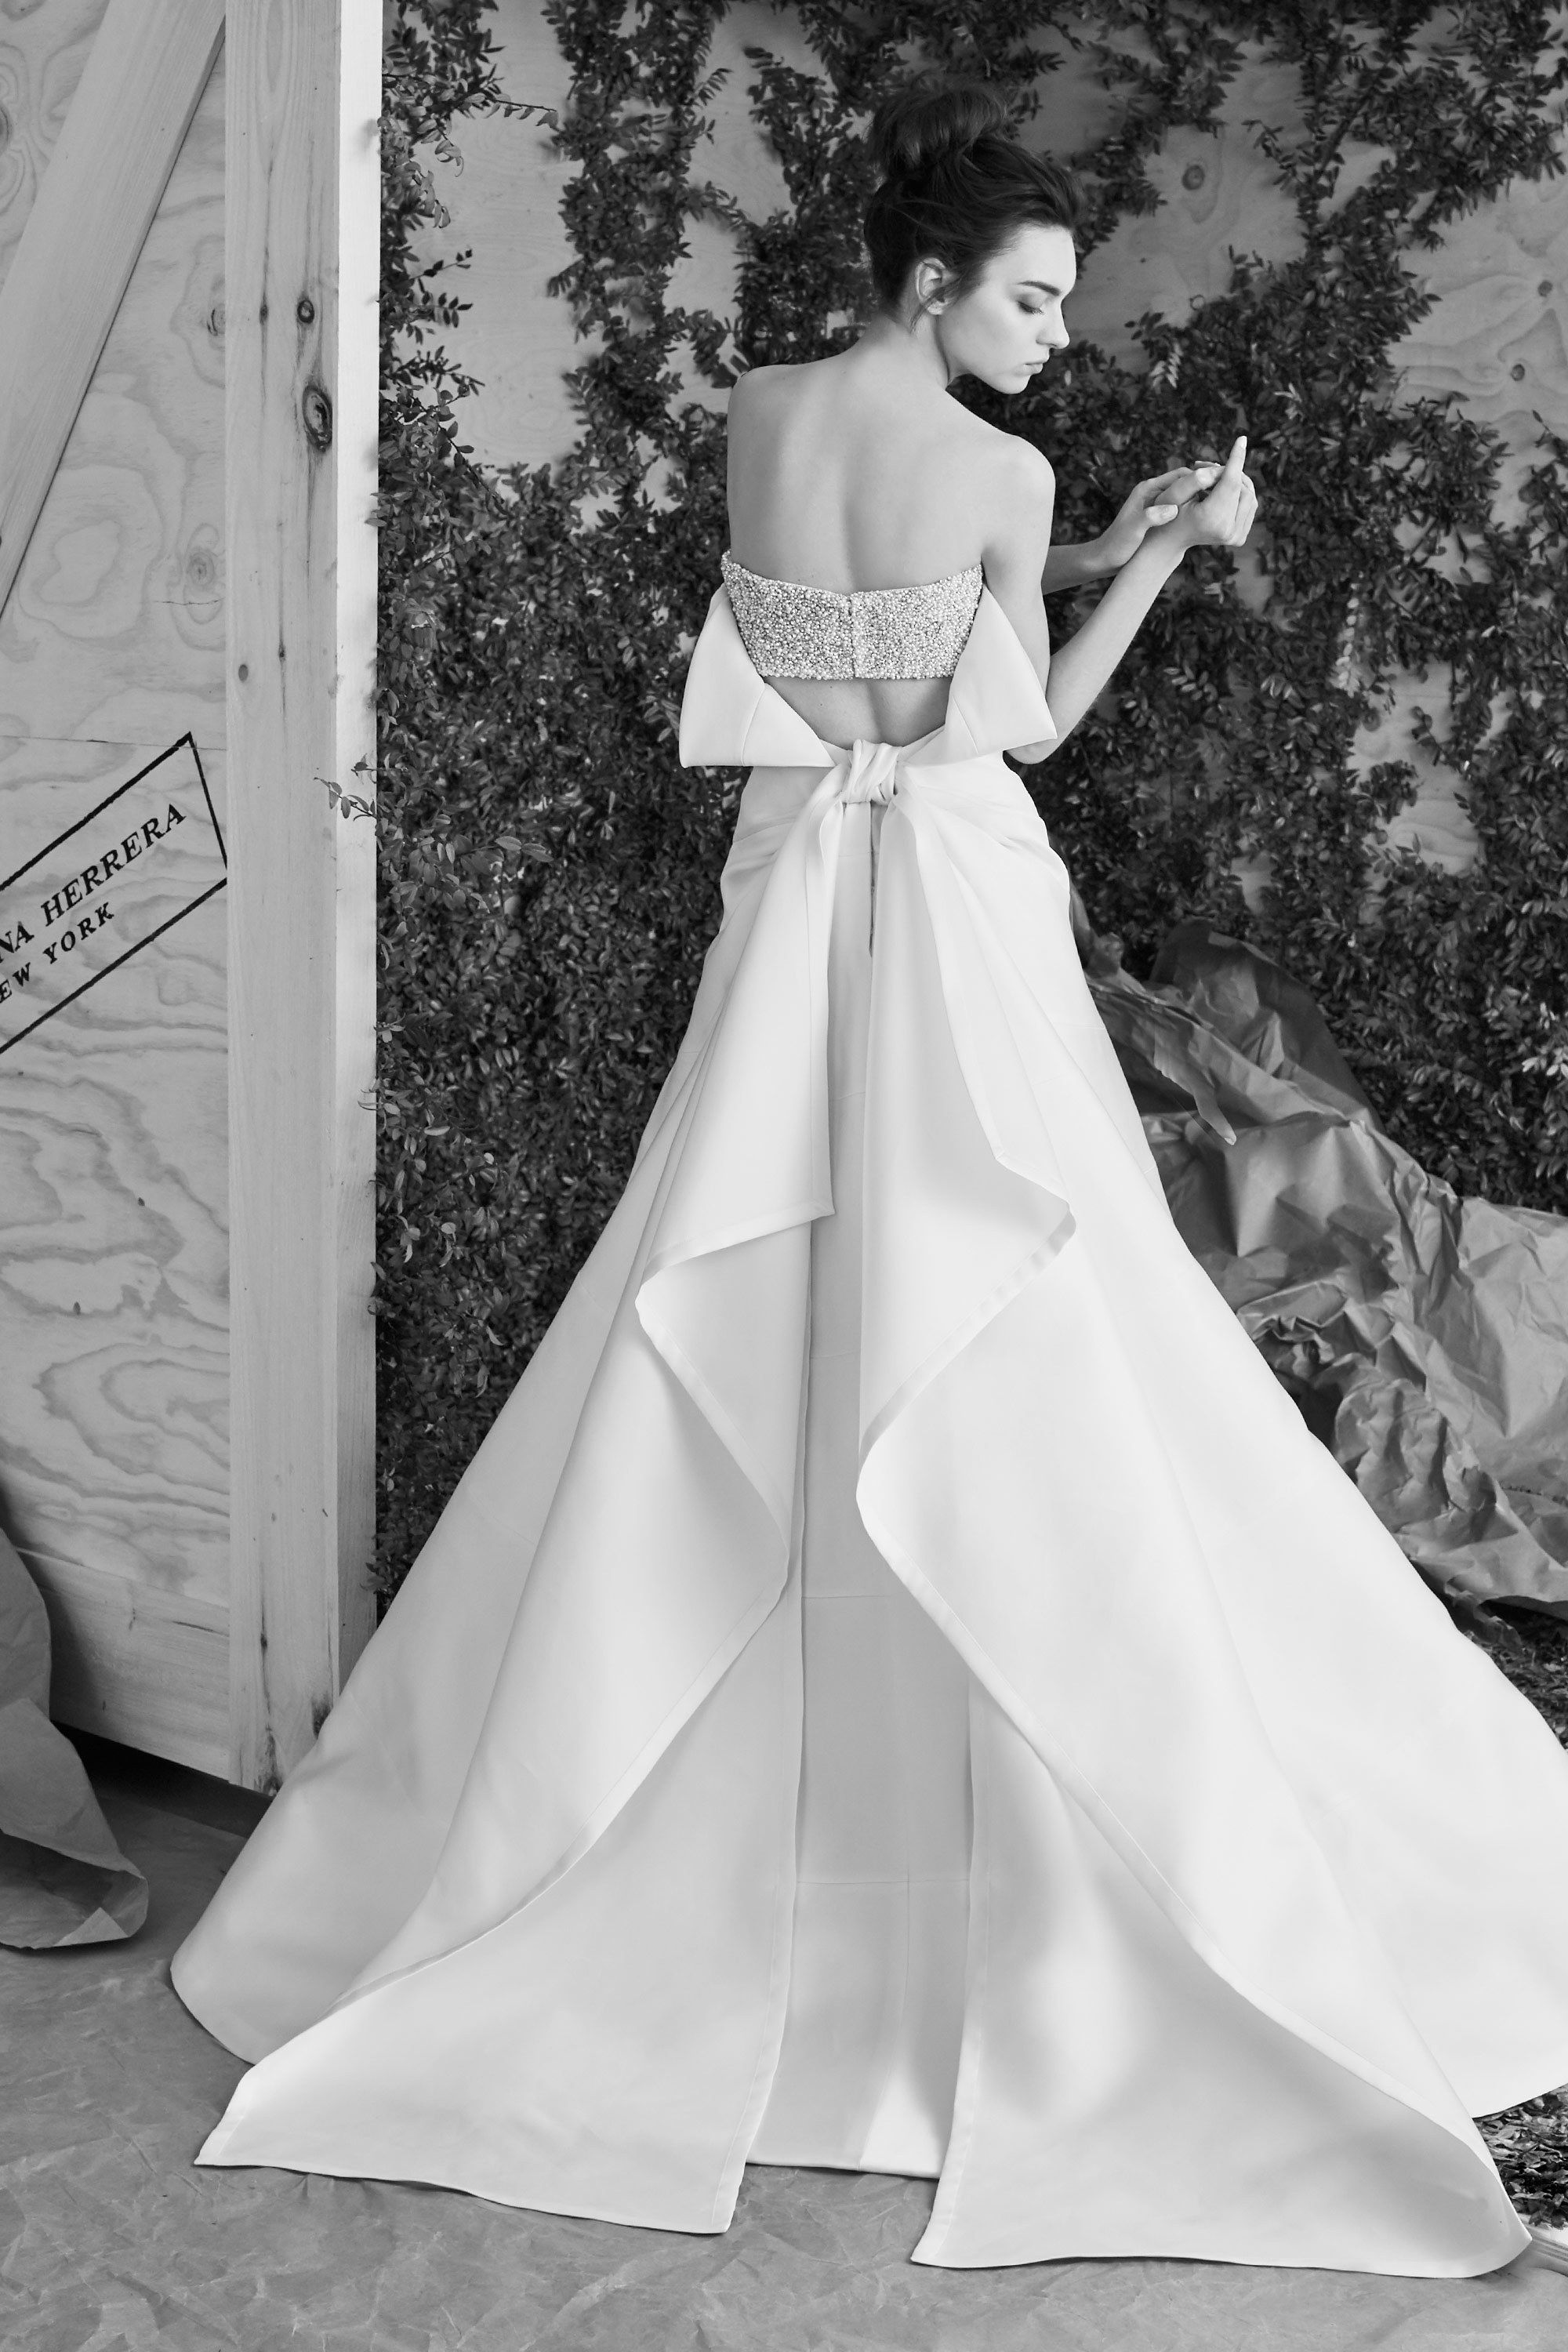 Carolina Herrera Bridal Spring 2017 Collection Photos Vogue